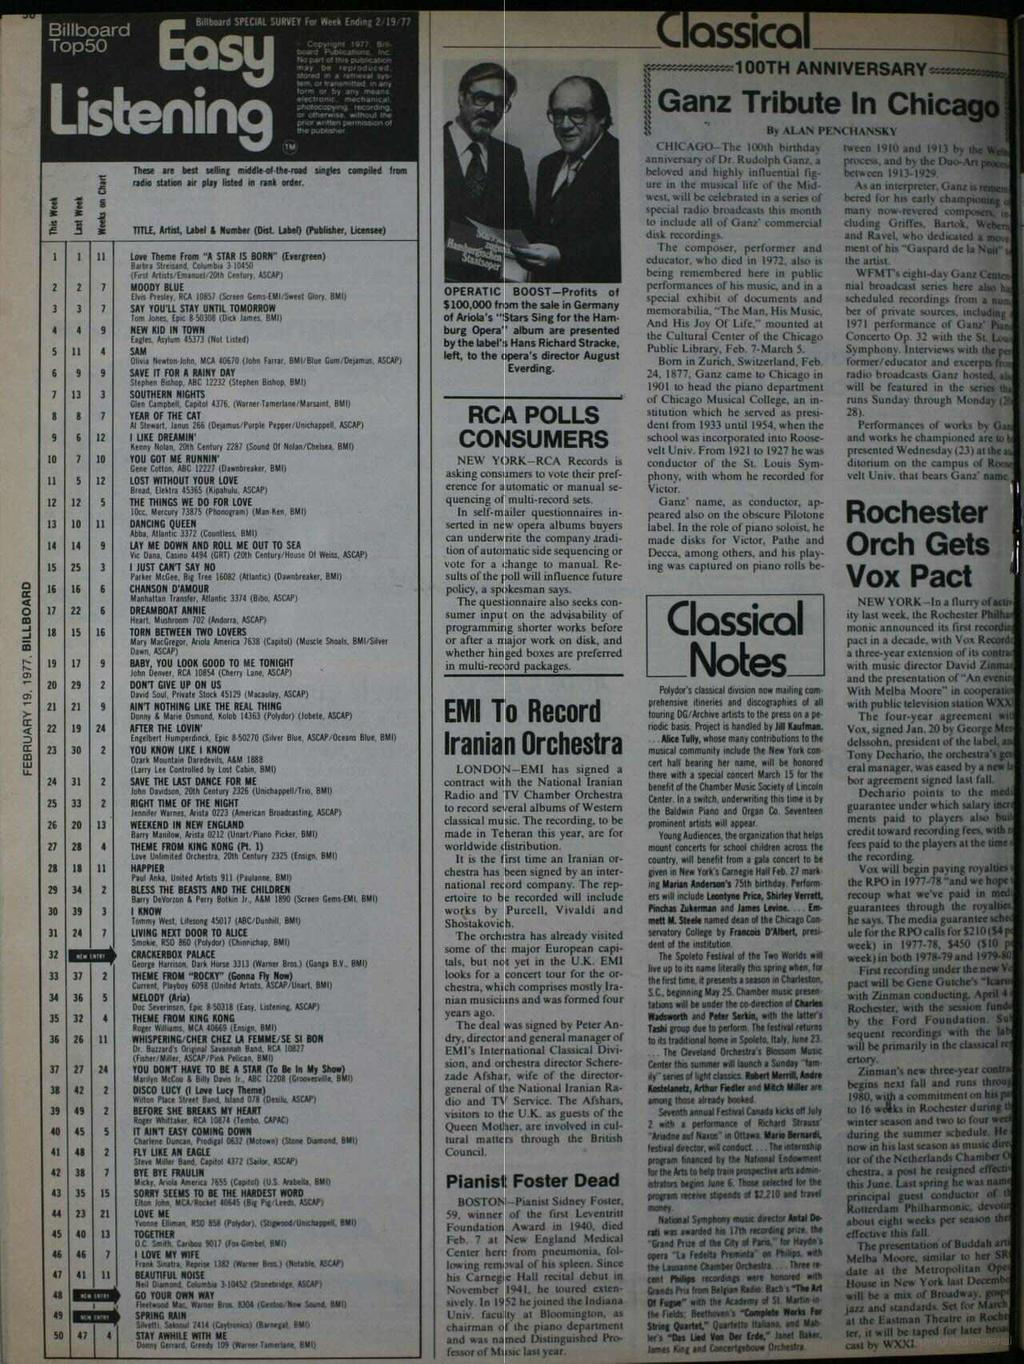 m Billboard Top50 6:::1Billboard SPECAL SURVEY For Week Ending 2,19 77 S Listenn9 s X 11 g s 2 2 7 3 3 7 4 4 9 5 11 4 6 9 9 7 3 3 8 8 7 9 6 12 O 7 10 ll 5 12 2 12 5 3 10 11 14 14 9 15 25 3 16 16 6 17